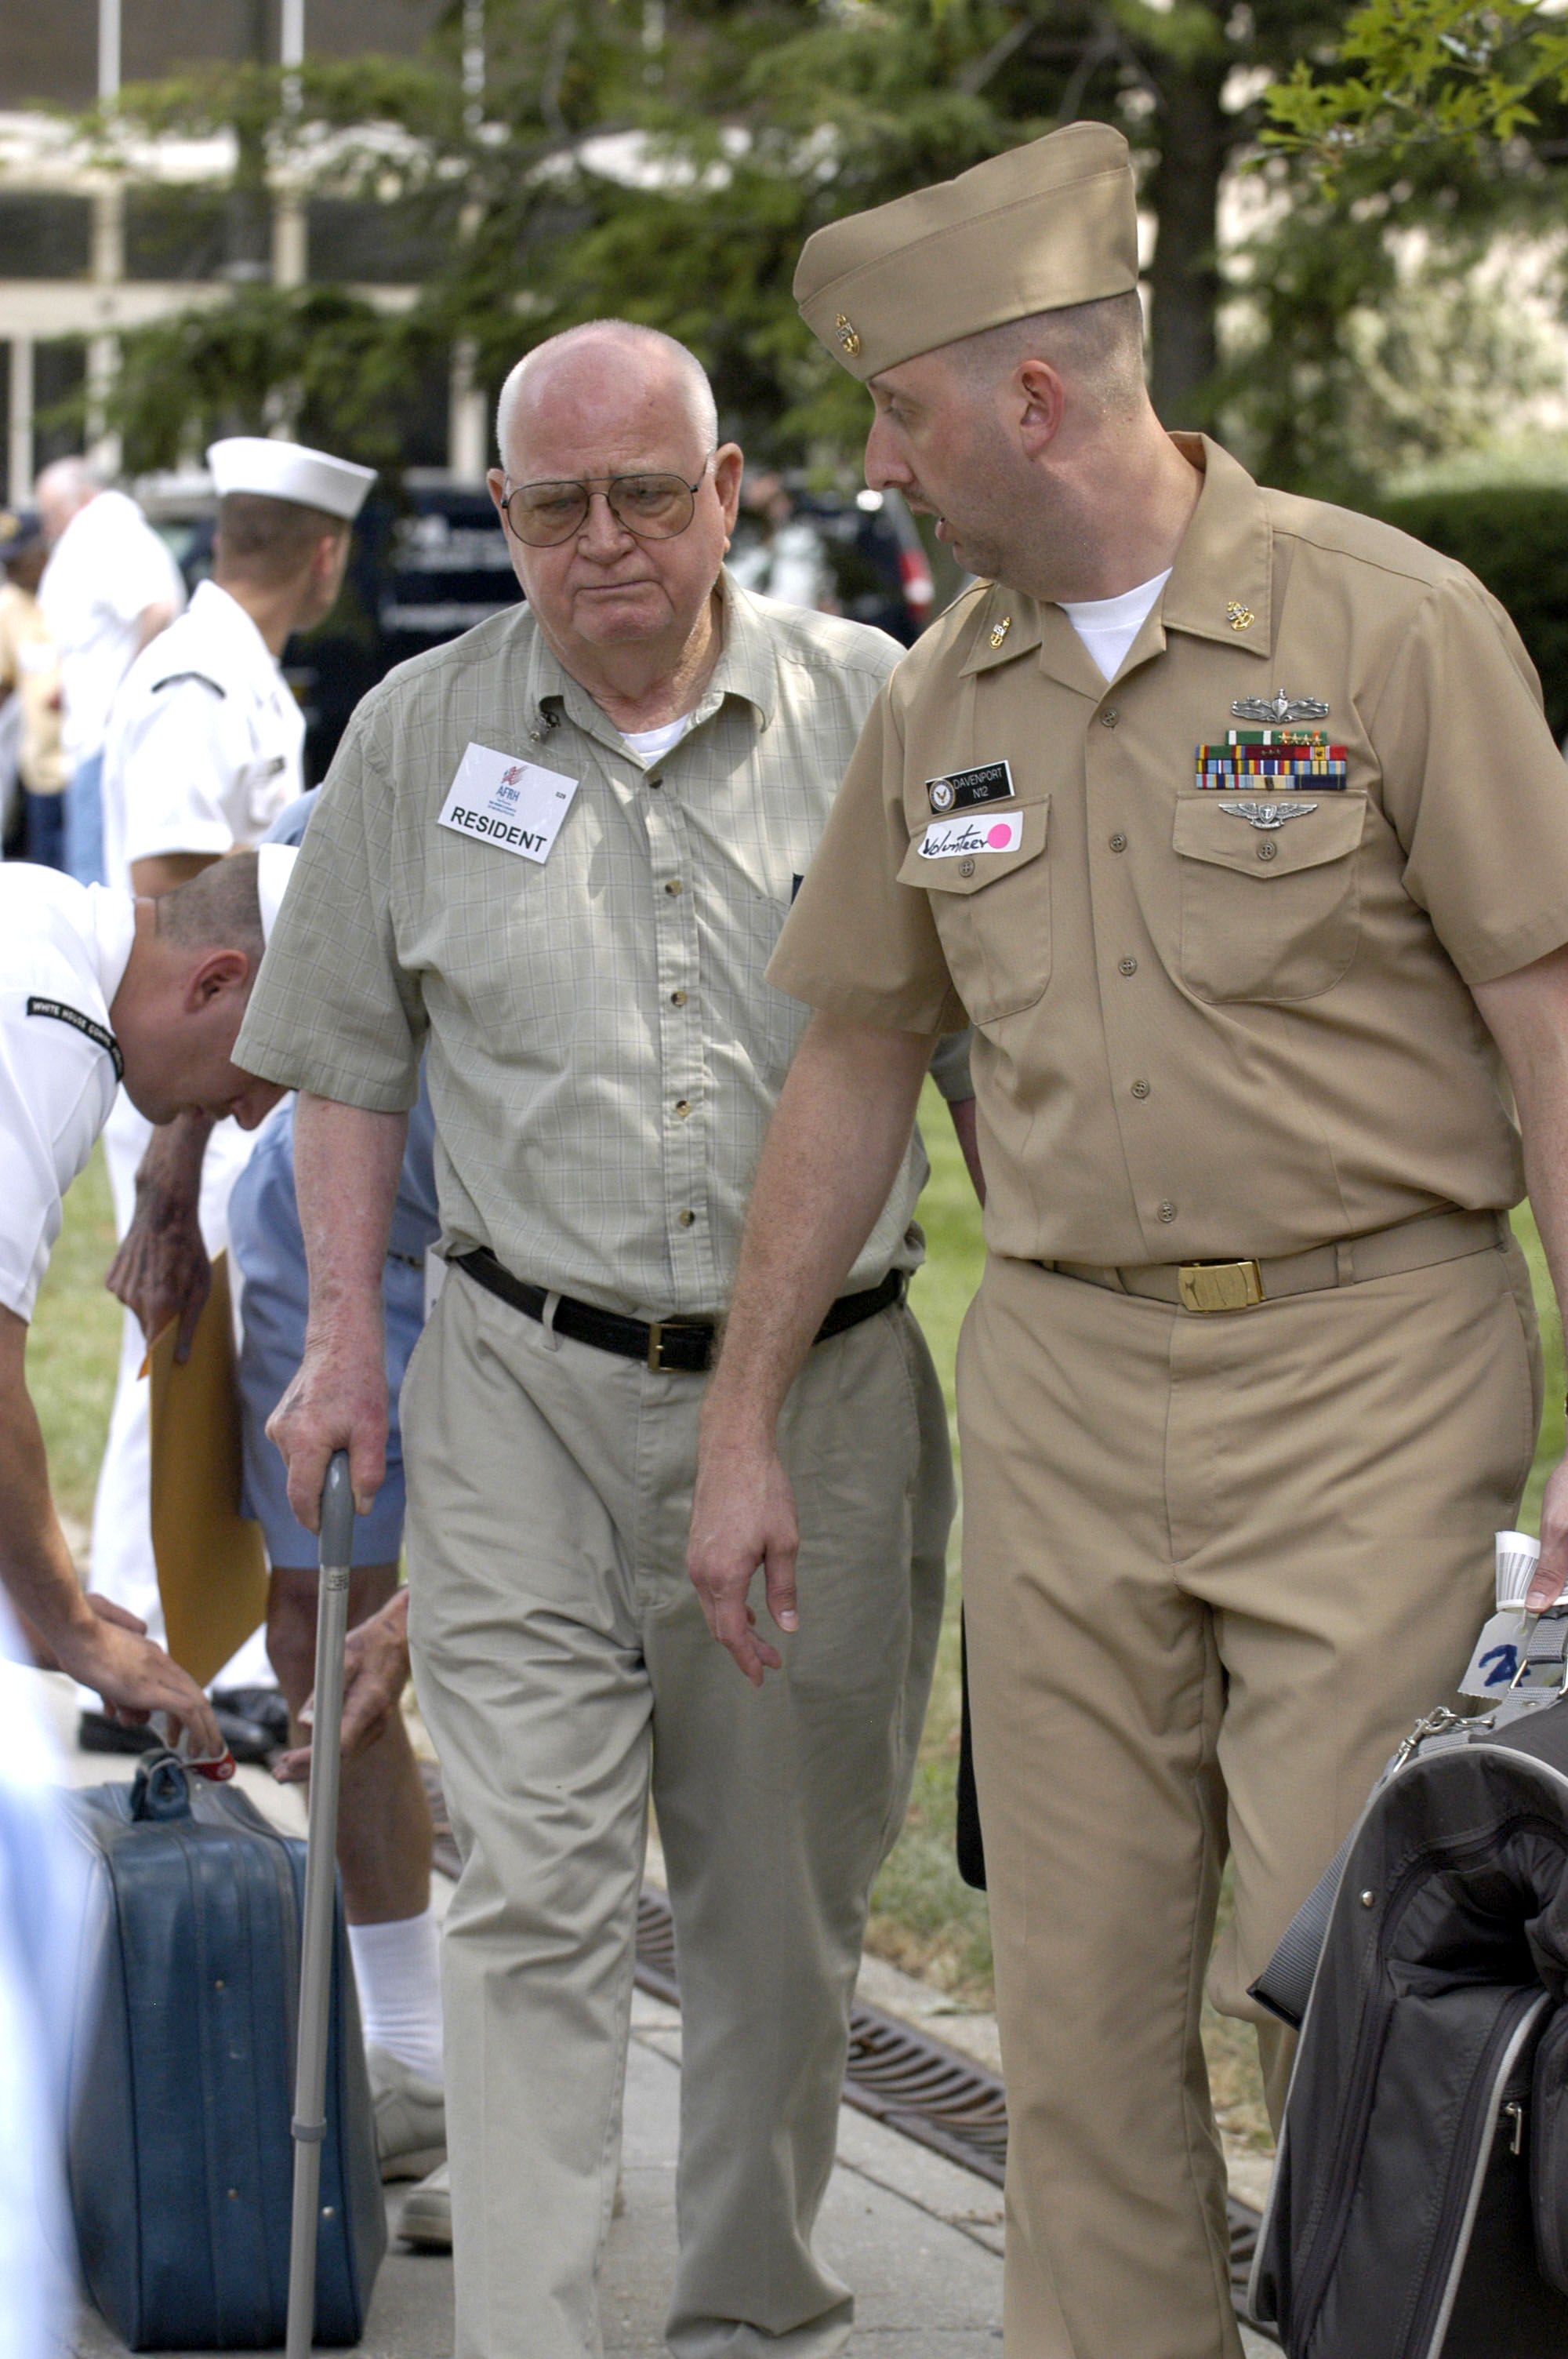 retired military officers dating After a military career, it is human nature to want someone to share your past and plan your future with if you have served in the armed forces, seek out a dating partner with similar experience, or someone who has already shared a life with a military man or woman.